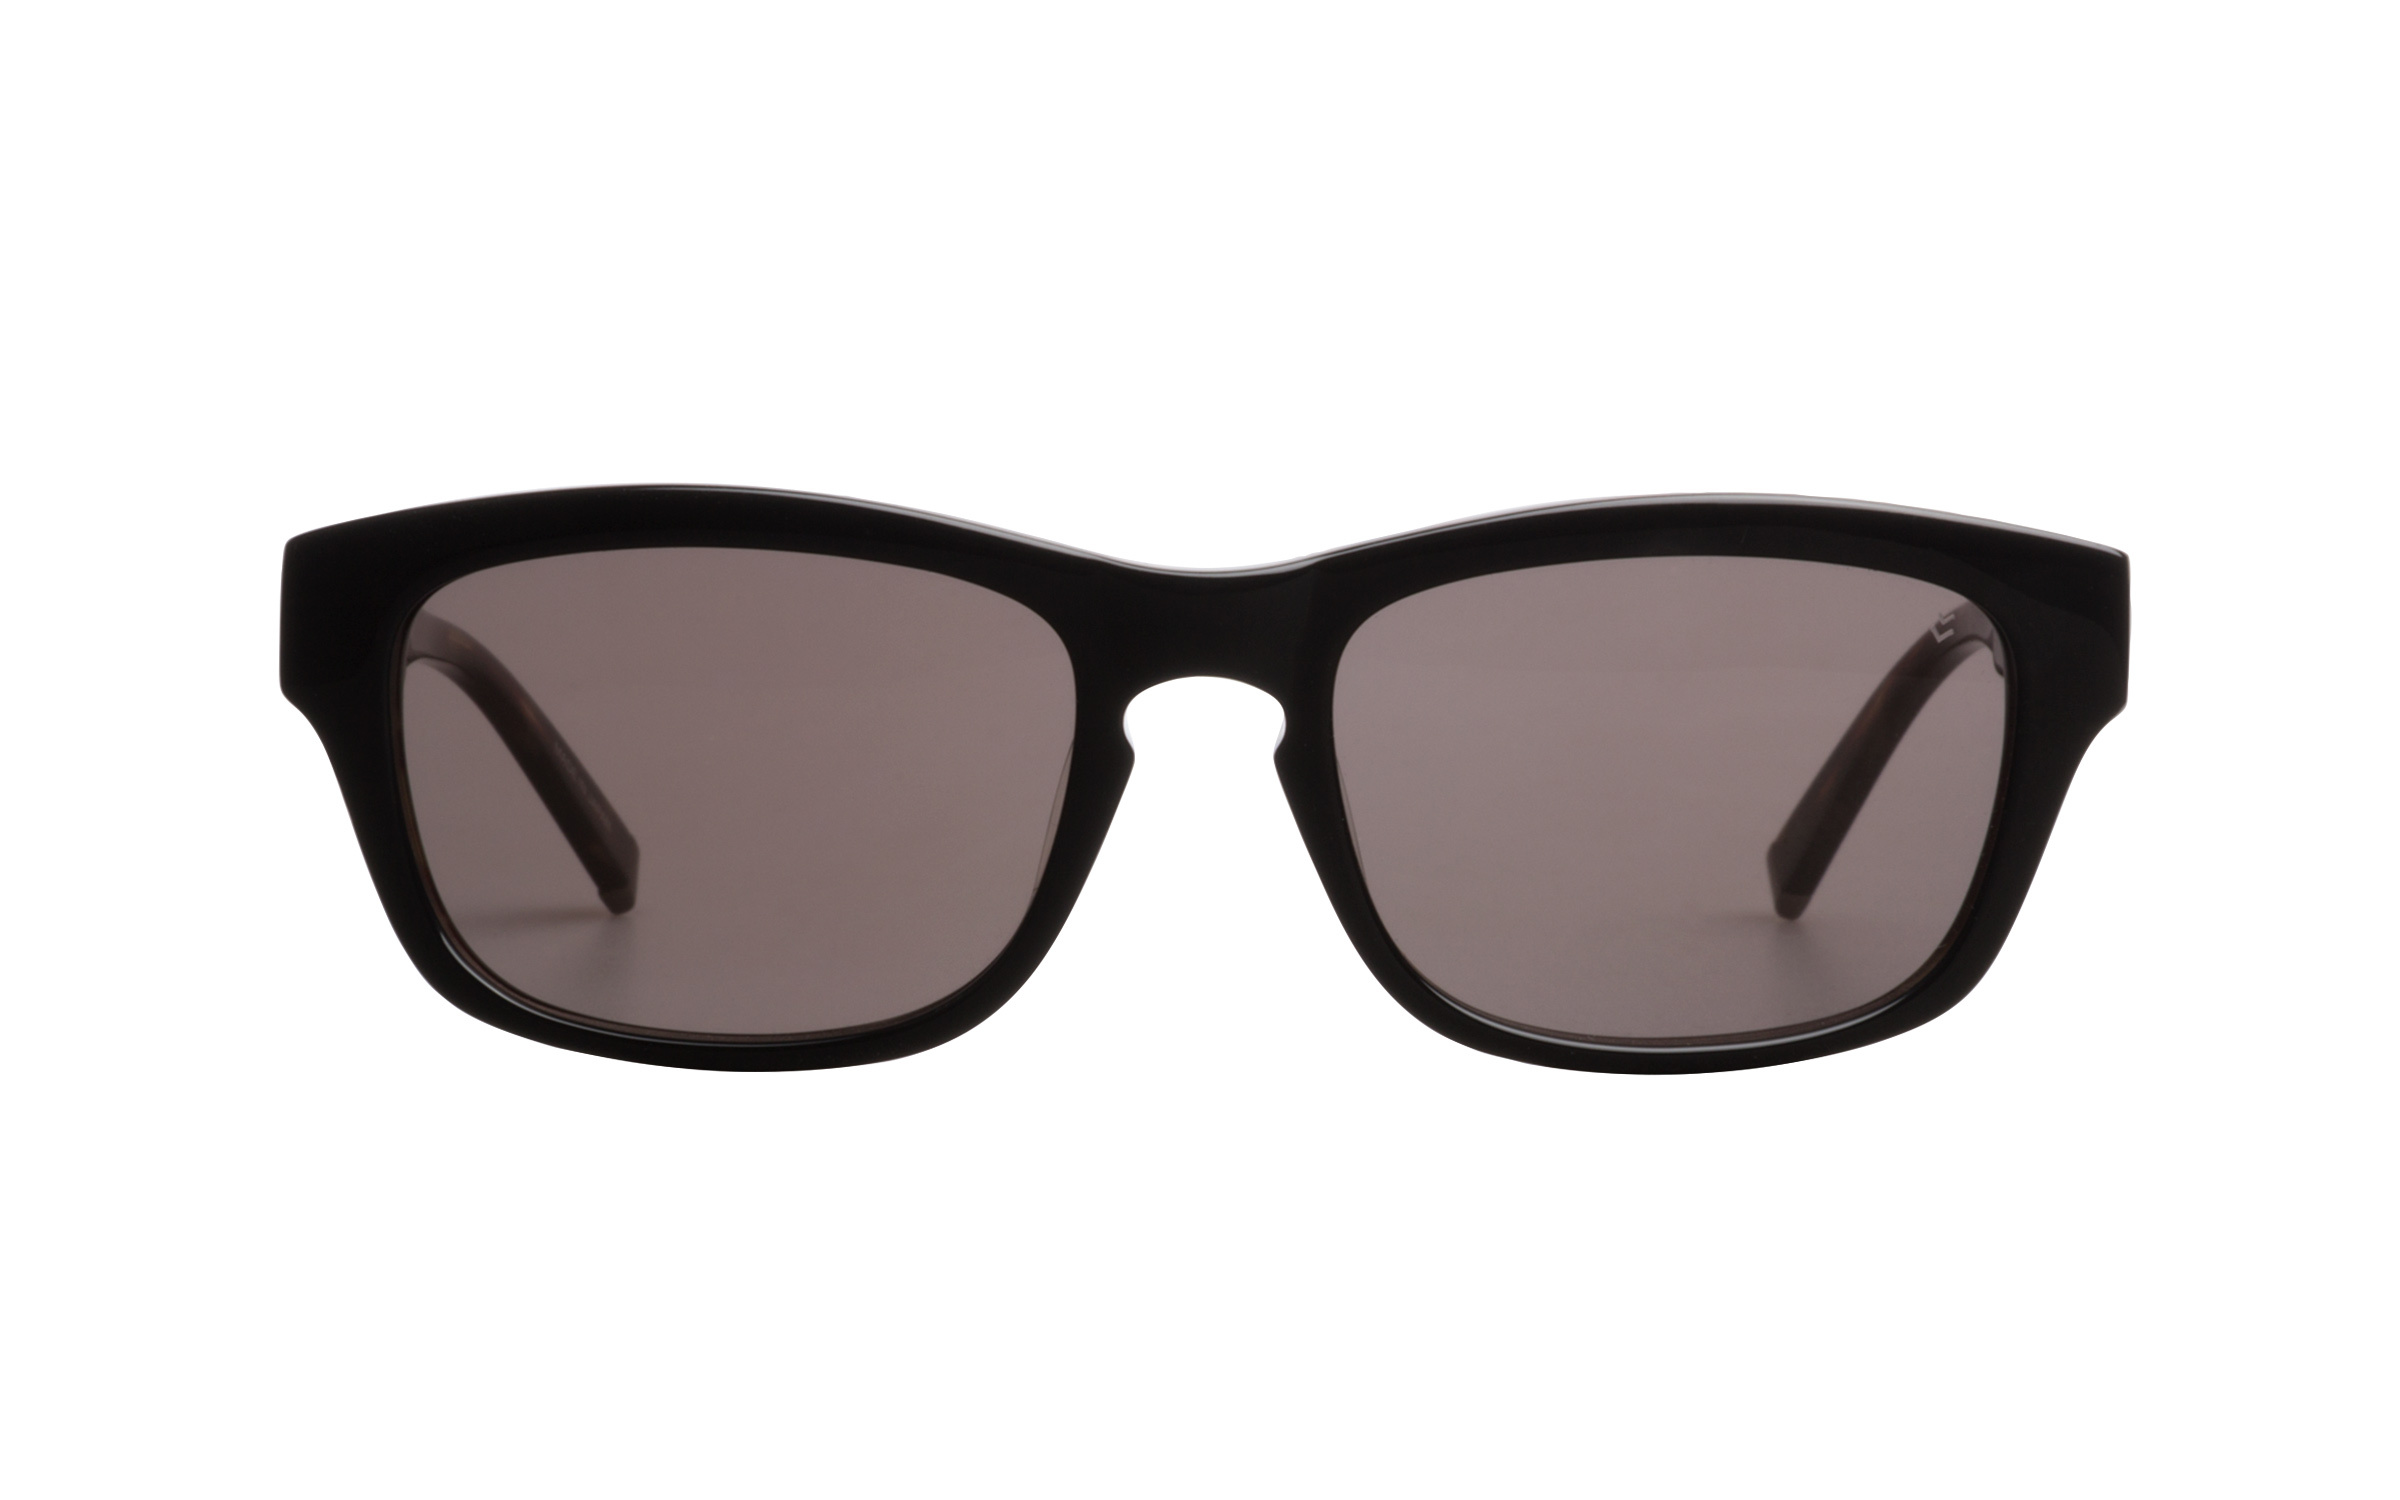 John_Varvatos_Sunglasses_Vintage_Black_Online_Coastal